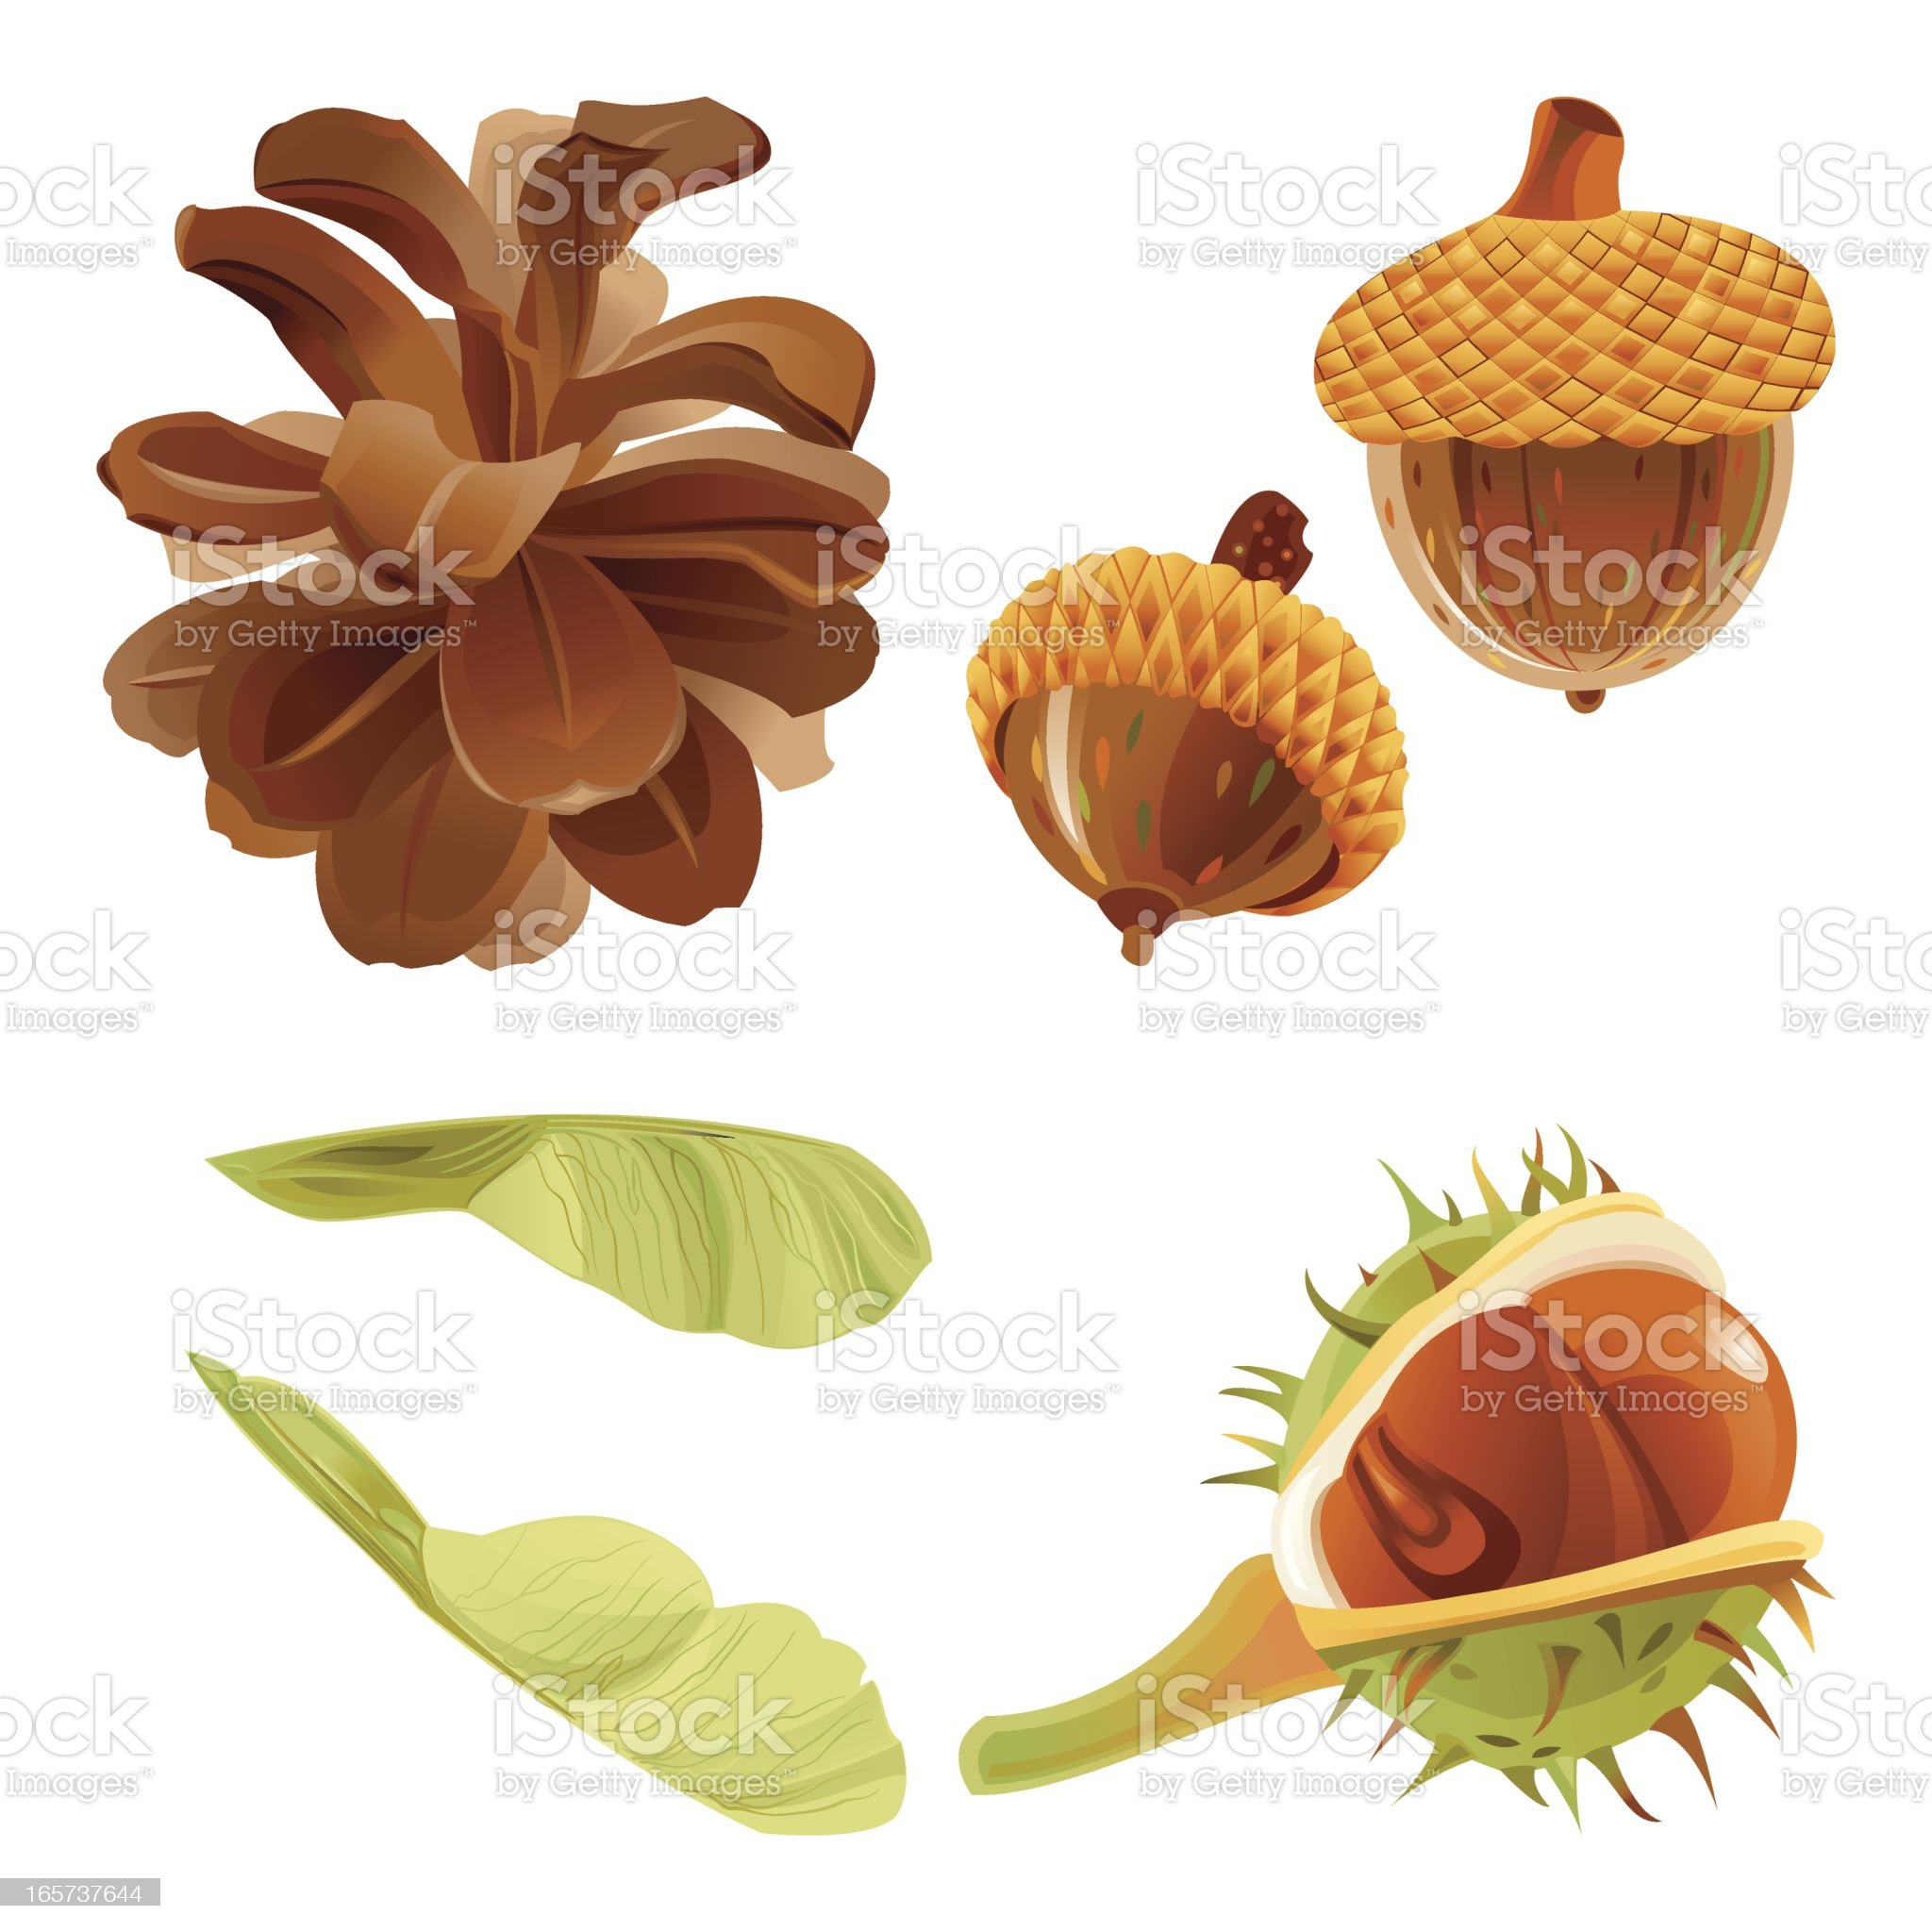 Autumn Forest Nuts and Seeds royalty-free stock vector art